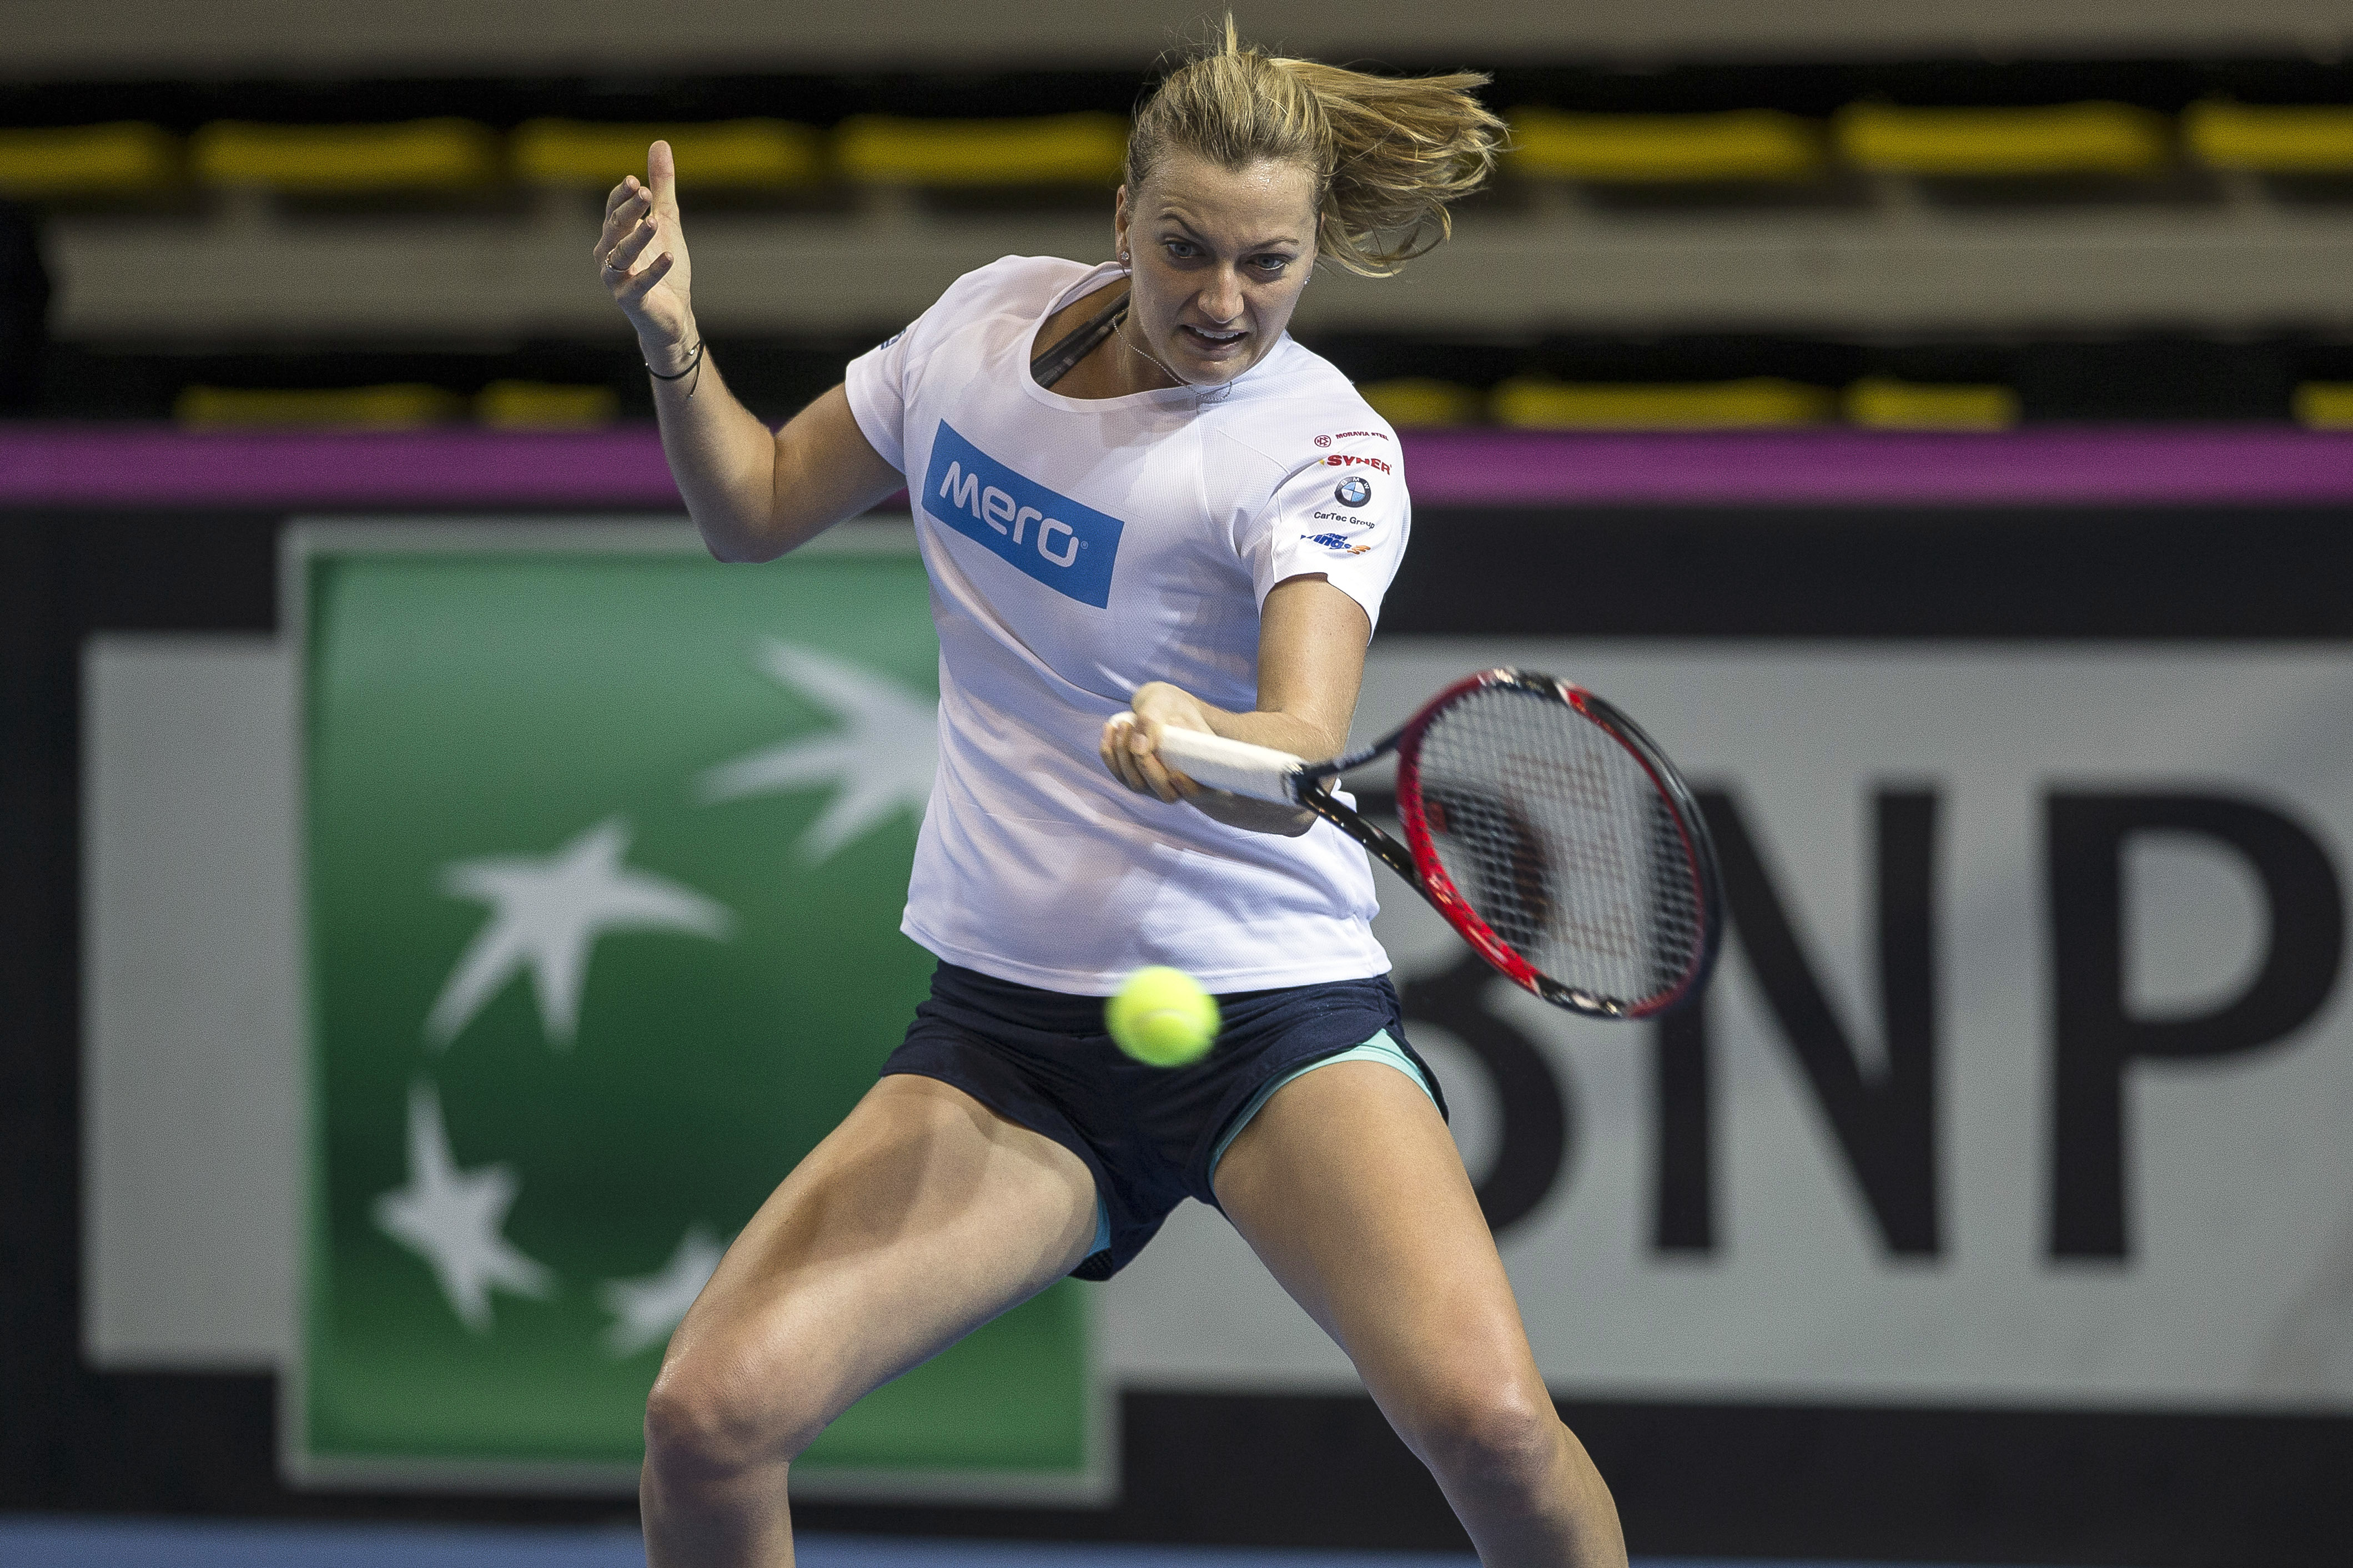 Czech Republic tennis player Petra Kvitova returns a shot during a training session on the eve of the Fed Cup Final between France and Czech Republic in Strasbourg, eastern France, Friday, Nov. 11, 2016. (AP Photo/Jean-Francois Badias)